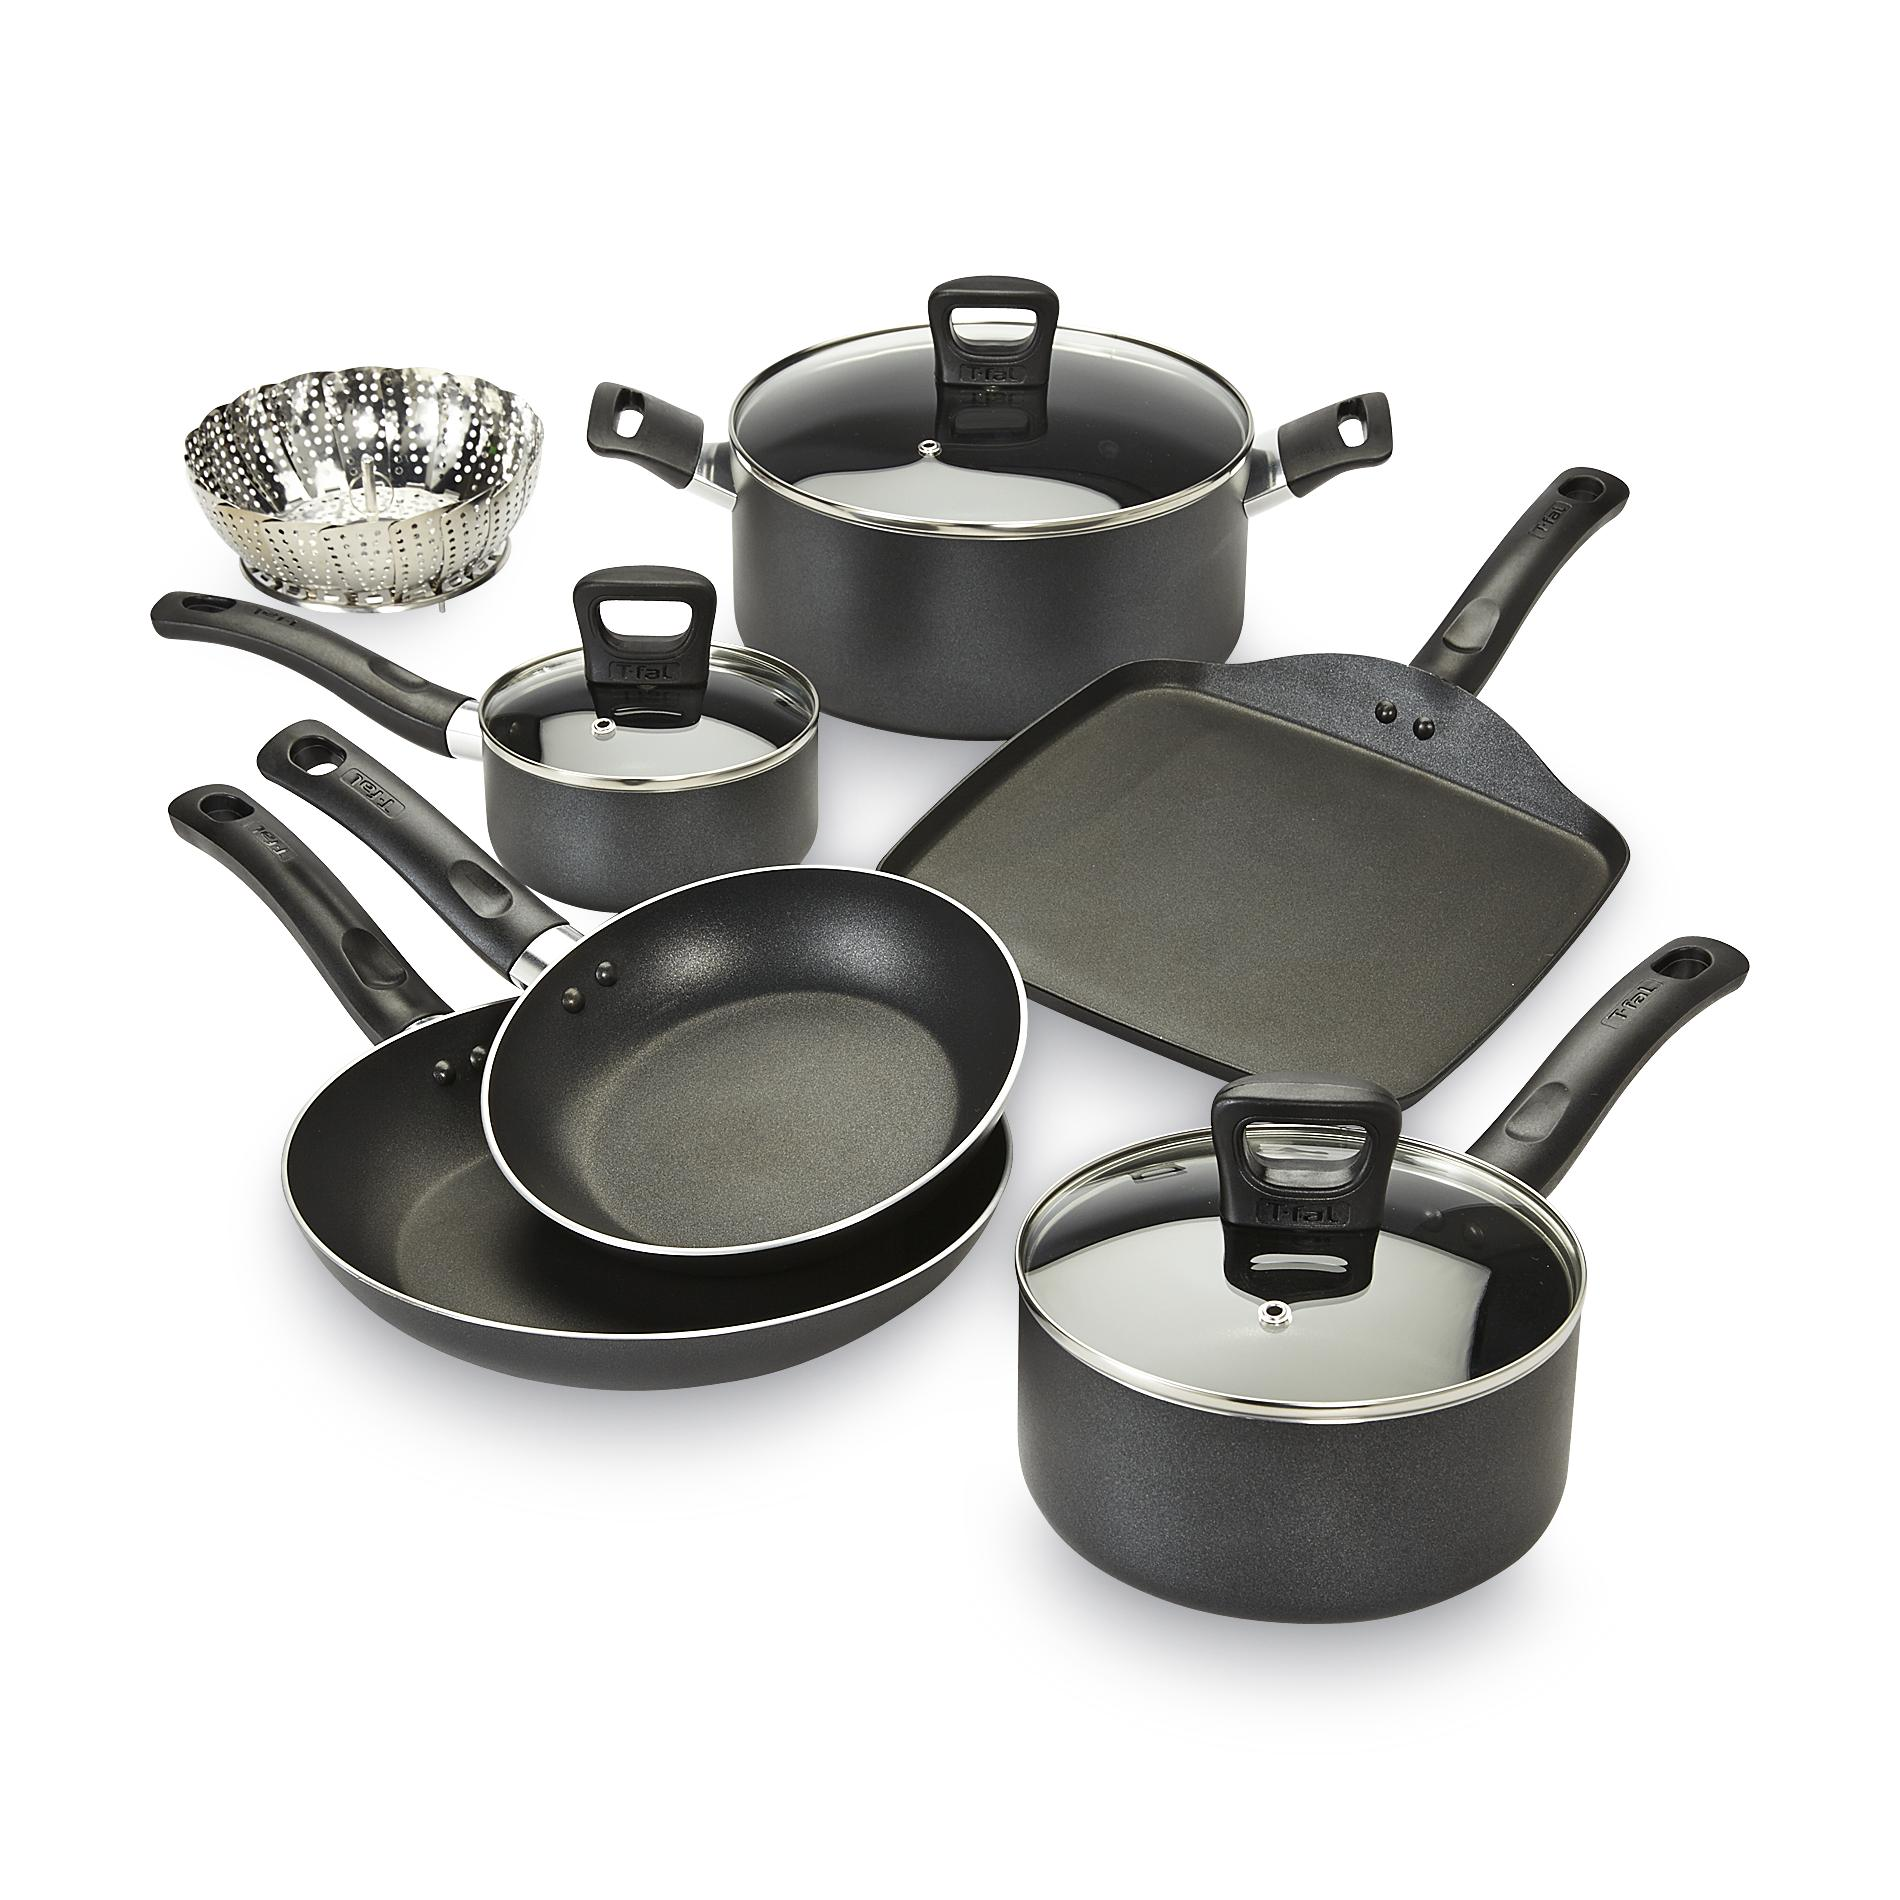 Tefal Pan Set T Fal 10 Pc Banquet Non Stick Stainless Steel Pot And Pan Set